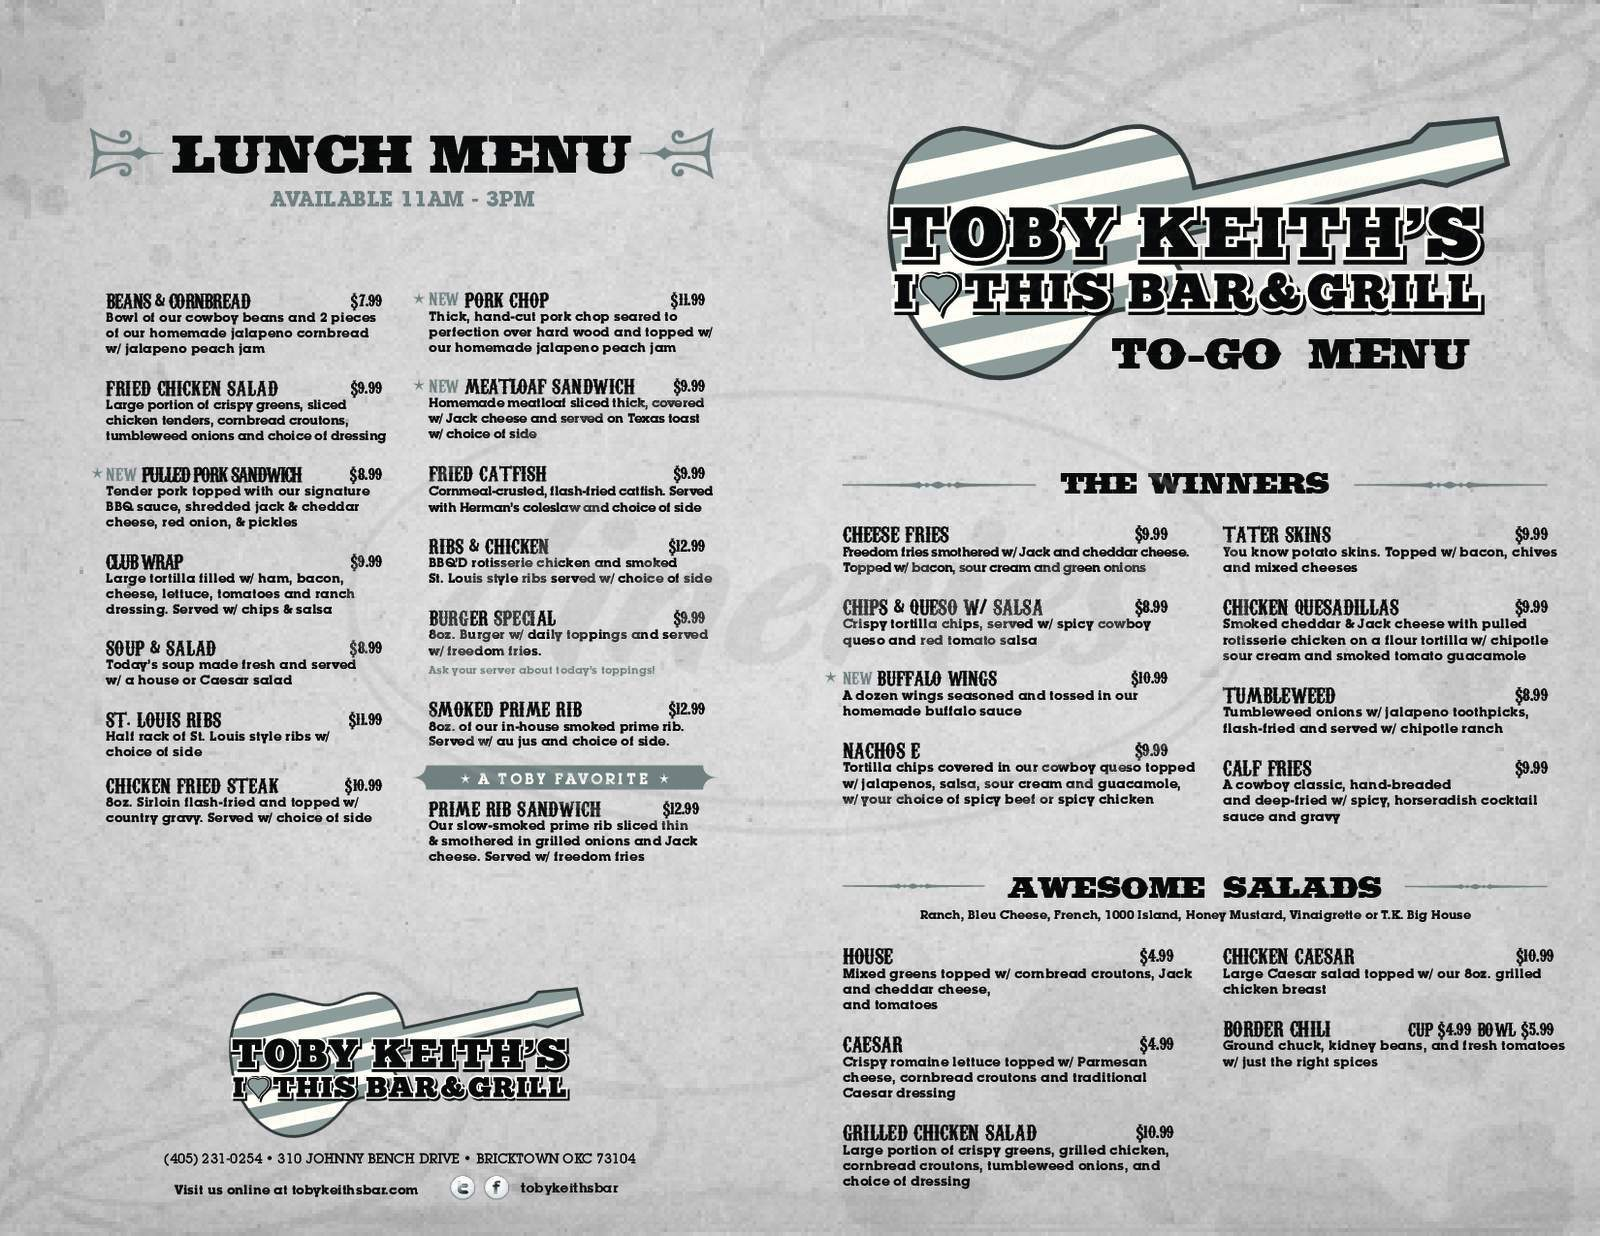 menu for Toby Keith's I Love This Bar & Grill